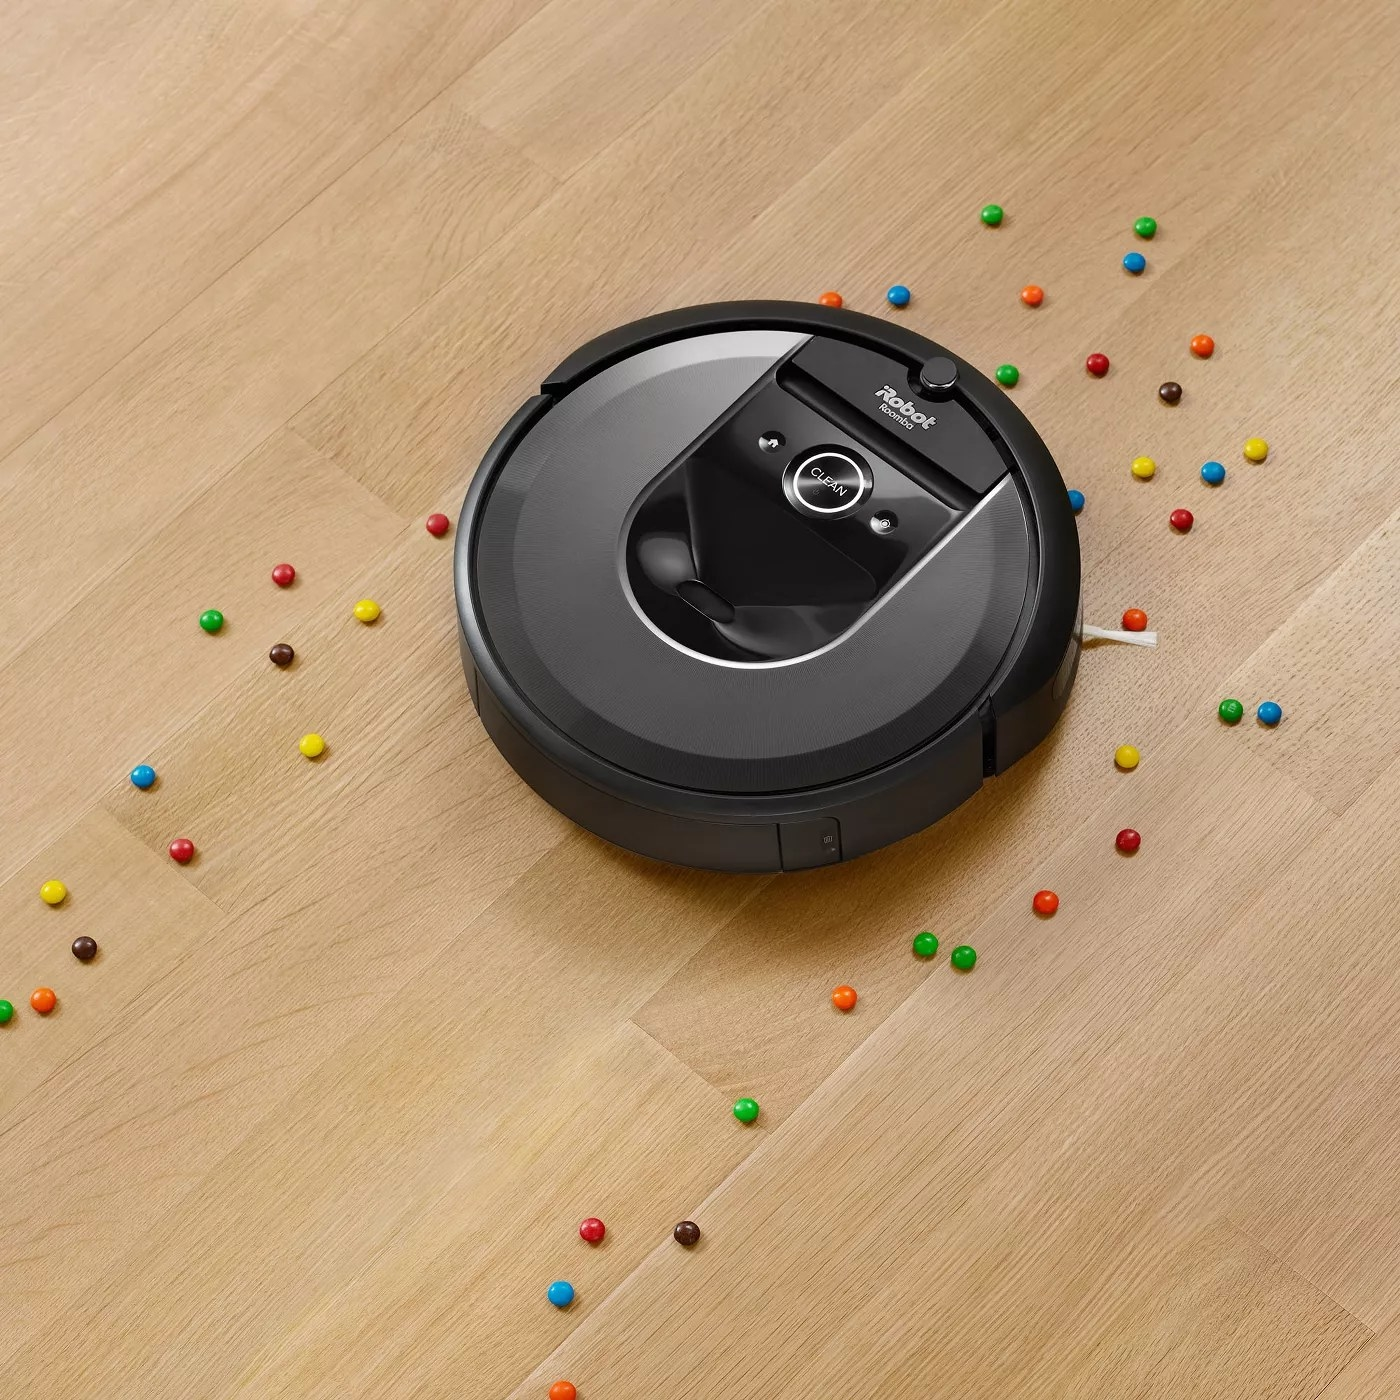 The Roomba picking up food on a wooden floor